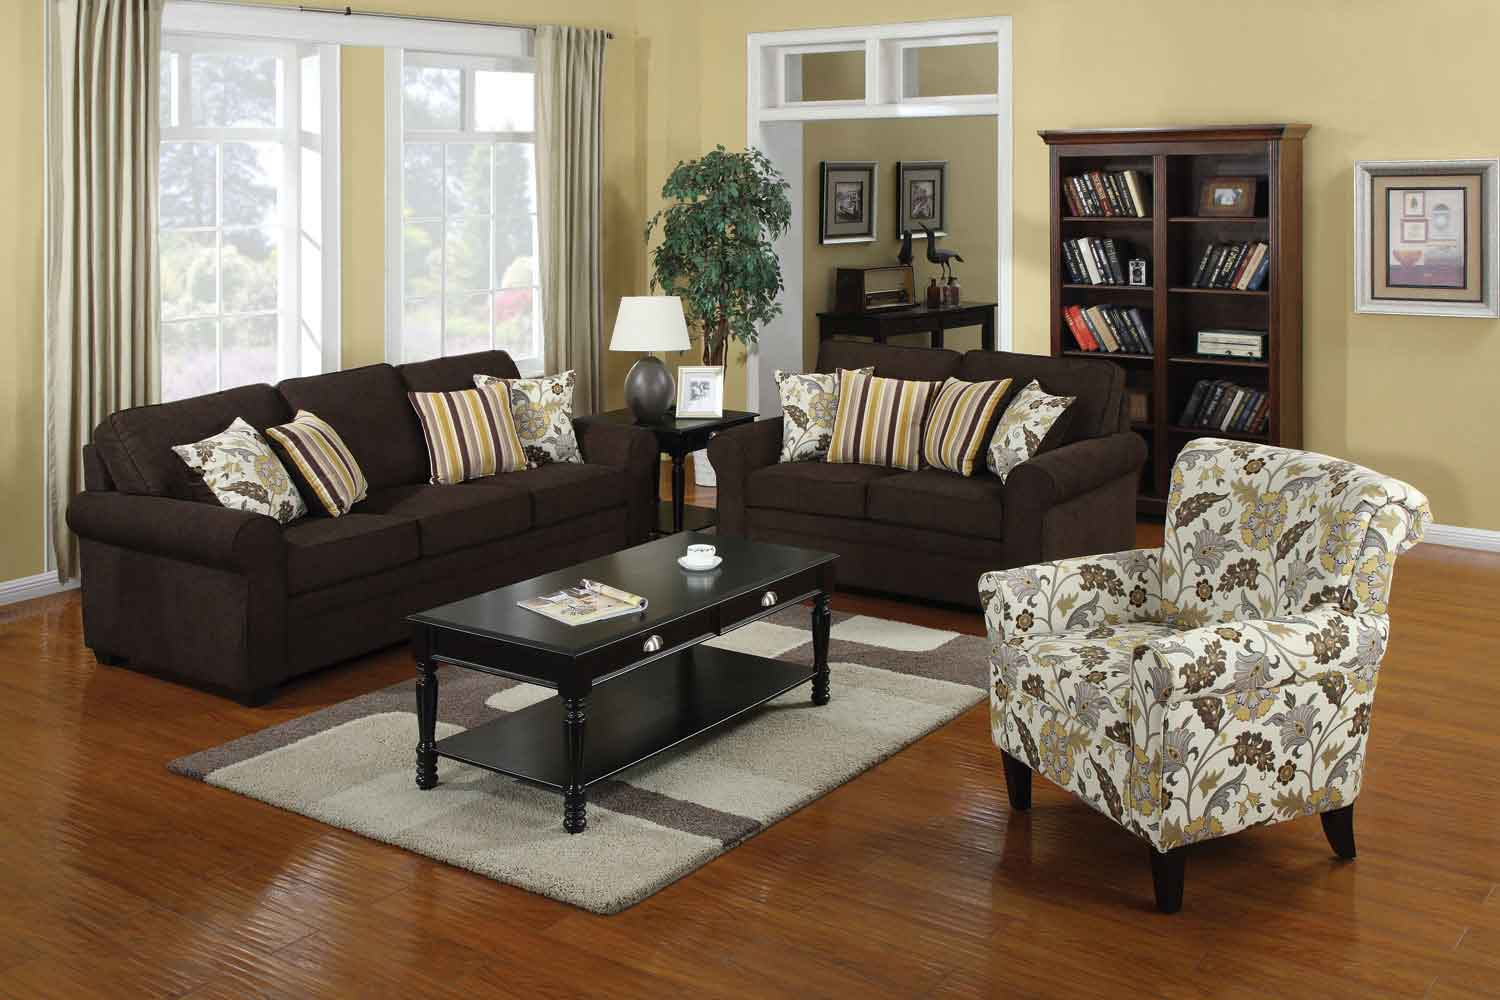 Coaster Rosalie Living Room Set Brown Black 504241